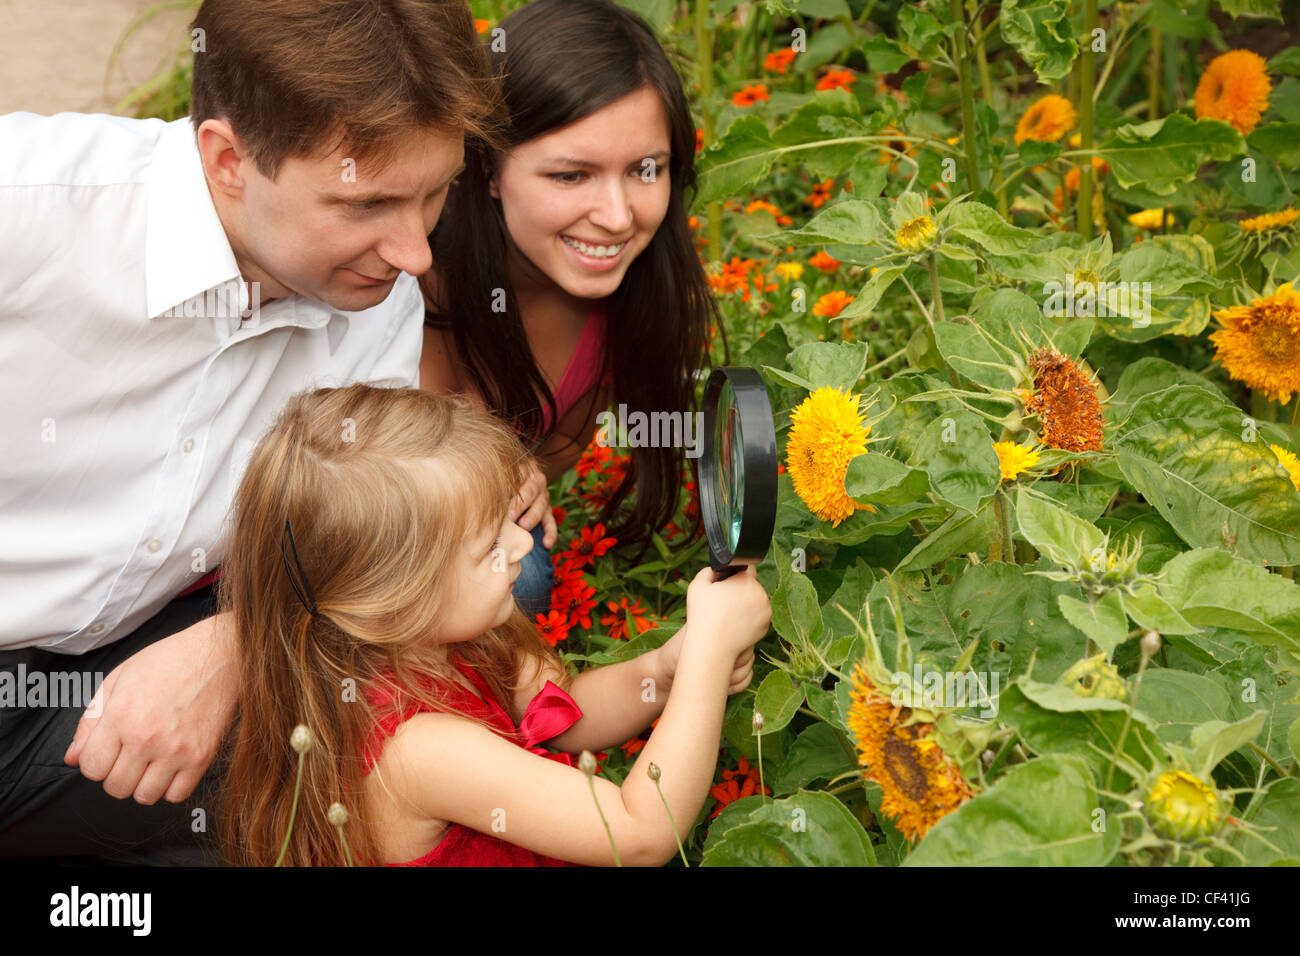 Little girl in red dress considers flower together with parents through magnifying glass. - Stock Image